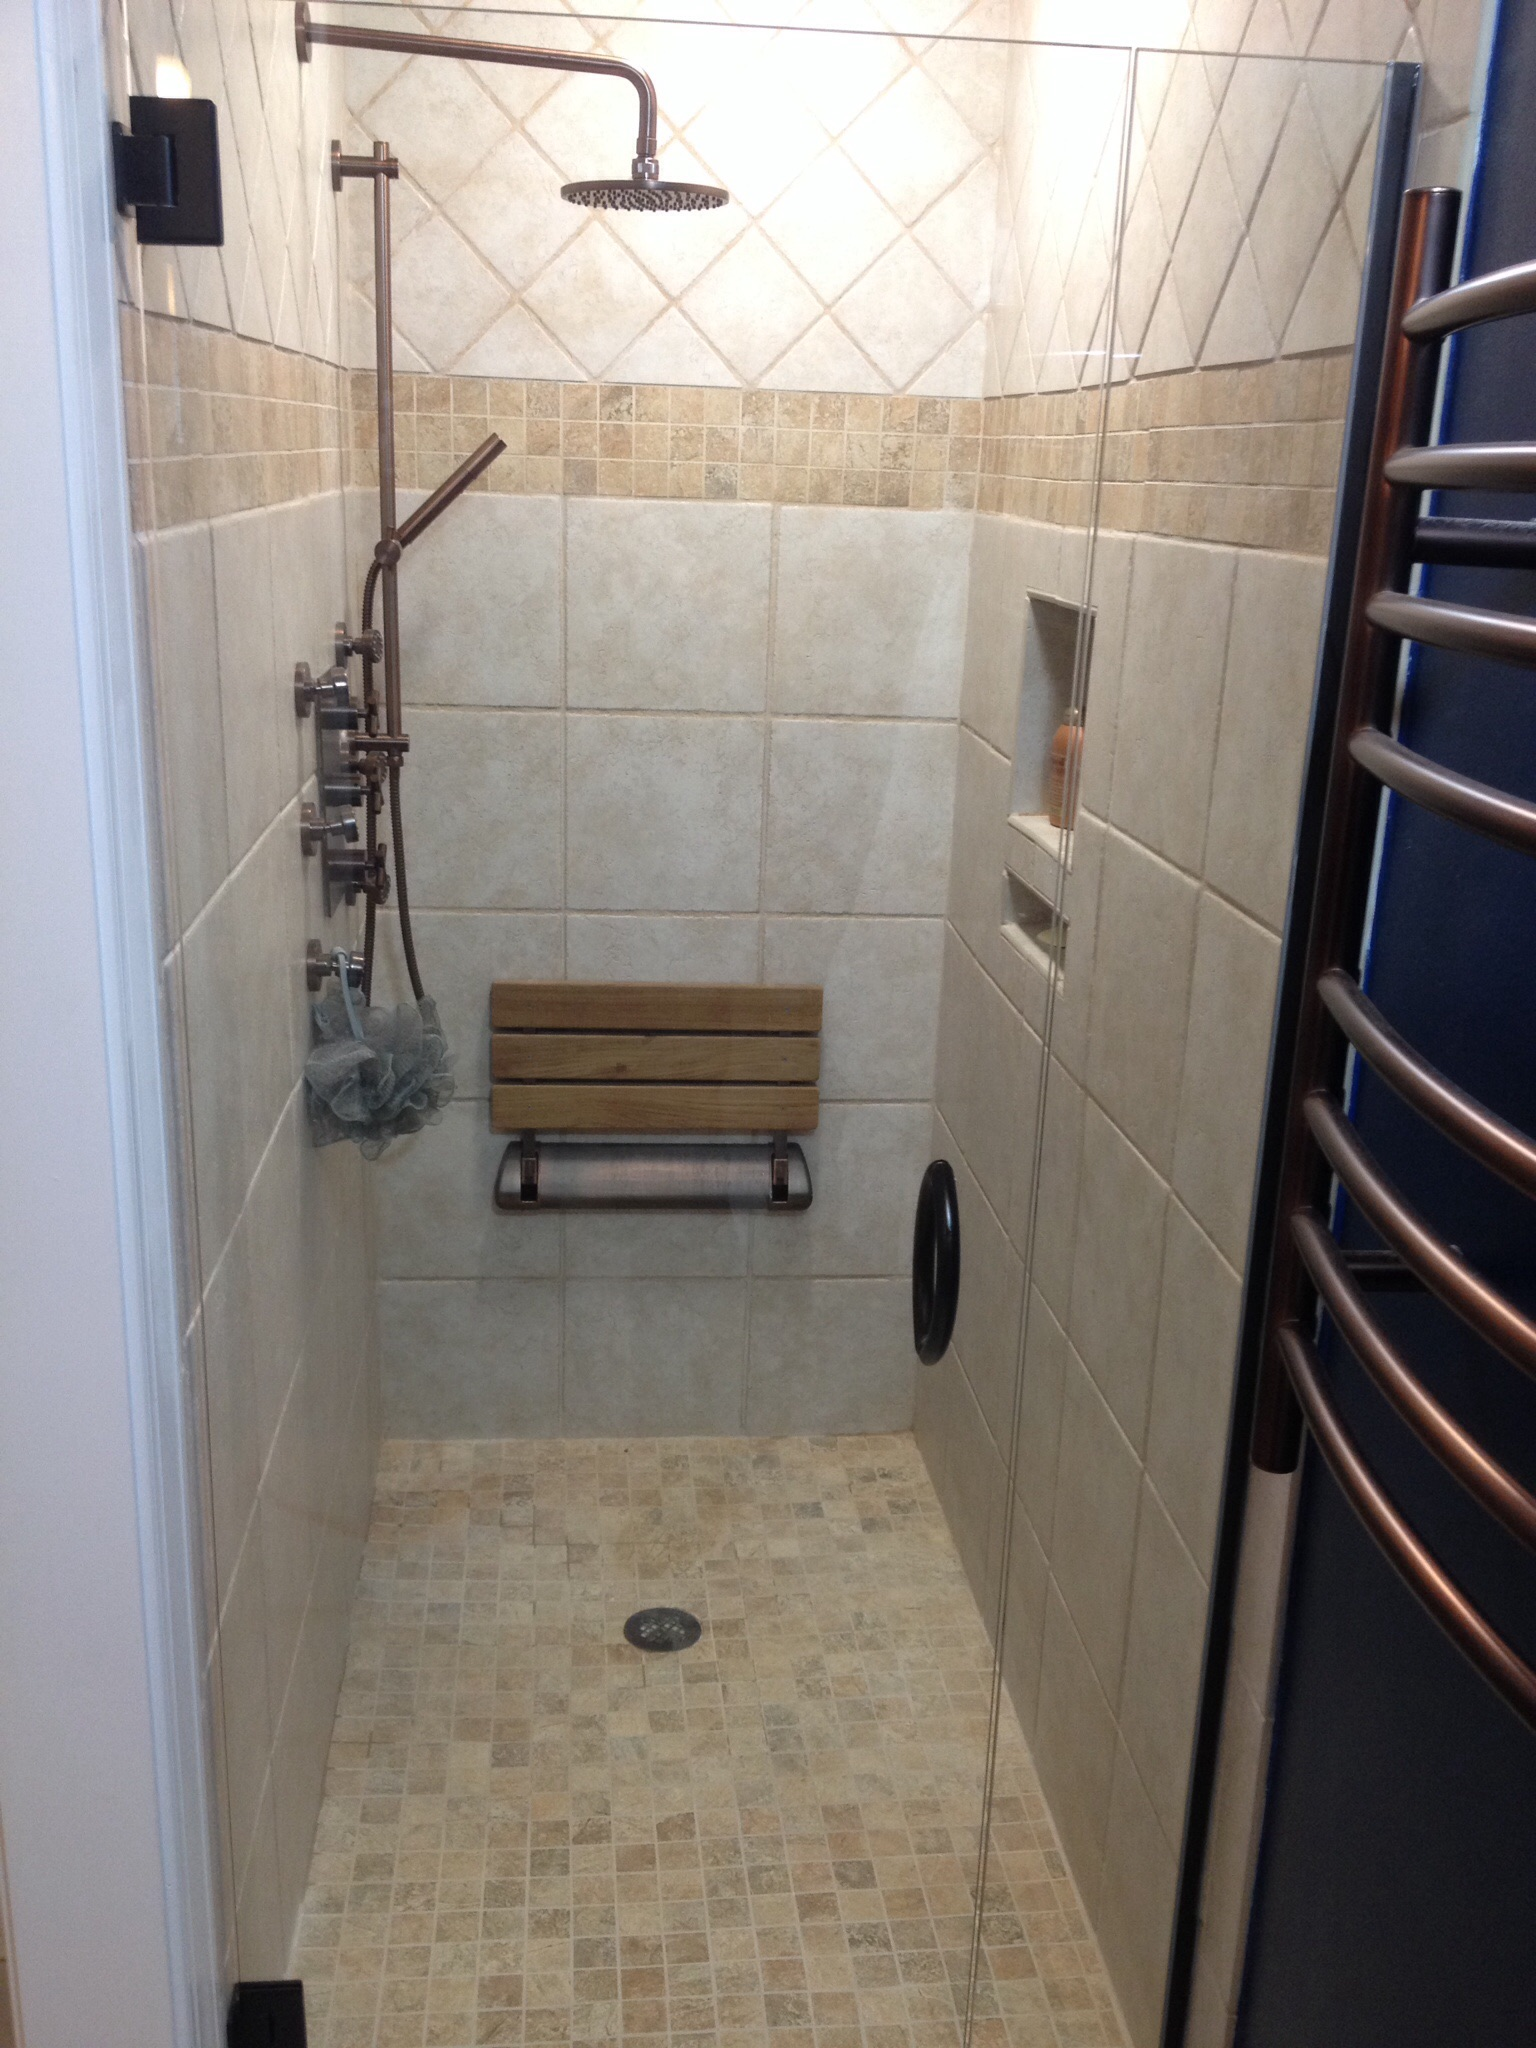 Rva Virginia Shower Door Llc Richmond 784 7244